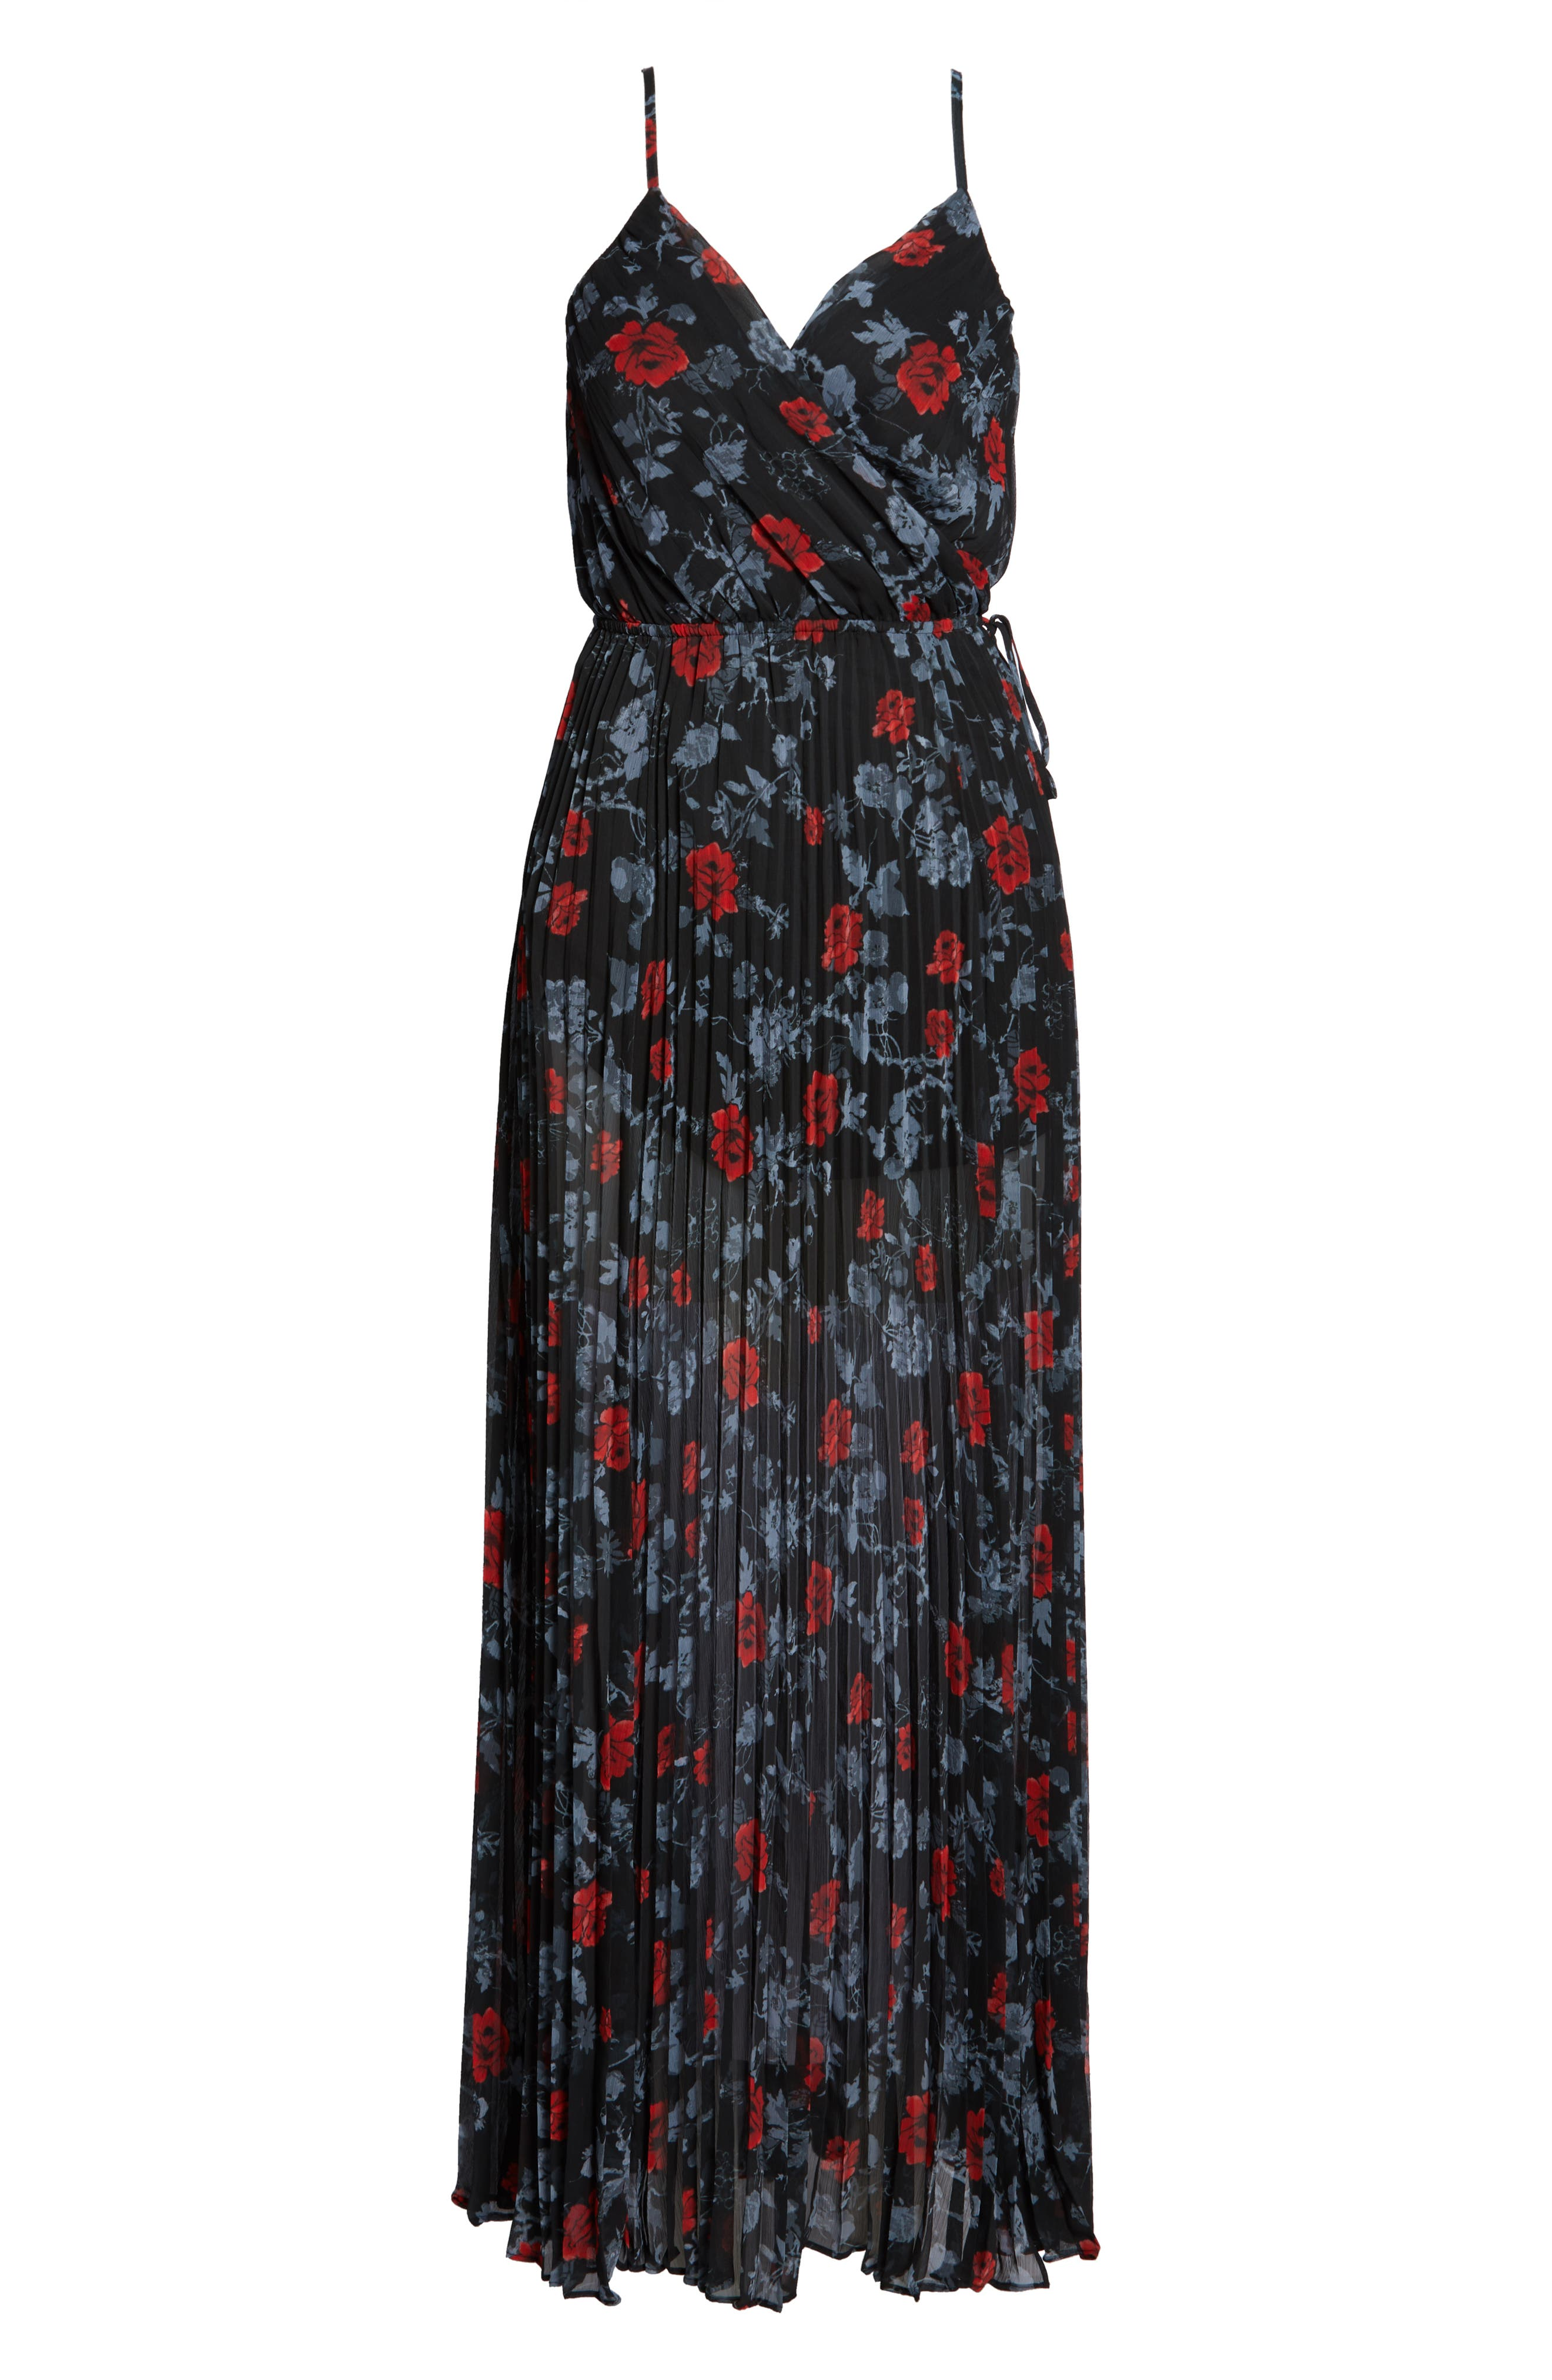 ALI & JAY, Roses Are Red Floral Pleated Maxi Dress, Alternate thumbnail 7, color, SCARLET ROSES